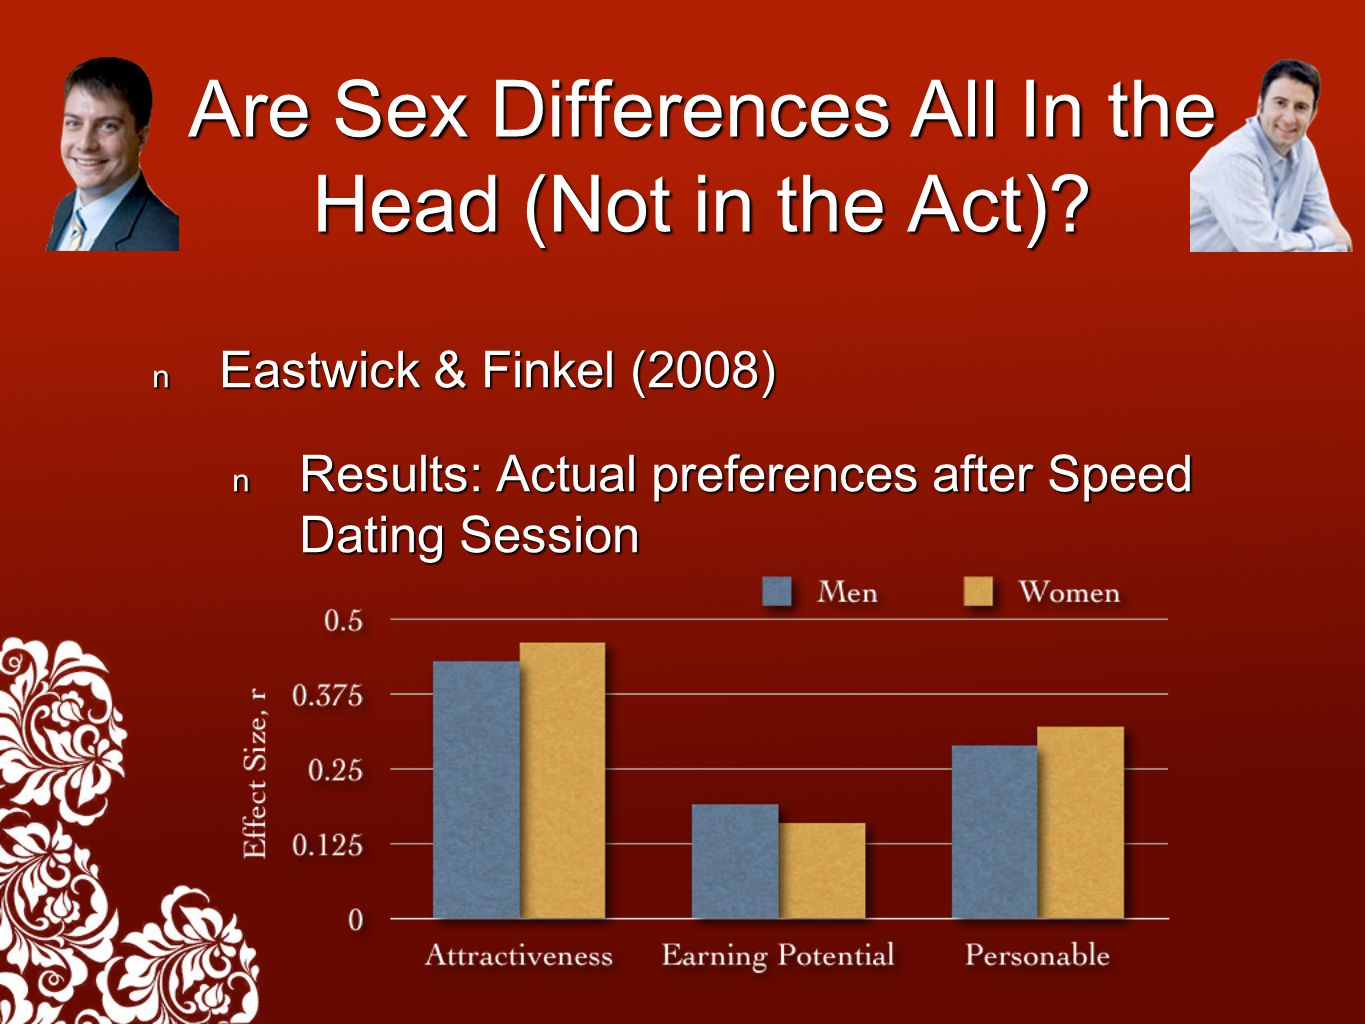 Are Sex Differences All In the Head (Not in the Act)? Eastwick & Finkel (2008) Eastwick & Finkel (2008) Results: Actual preferences after Speed Dating